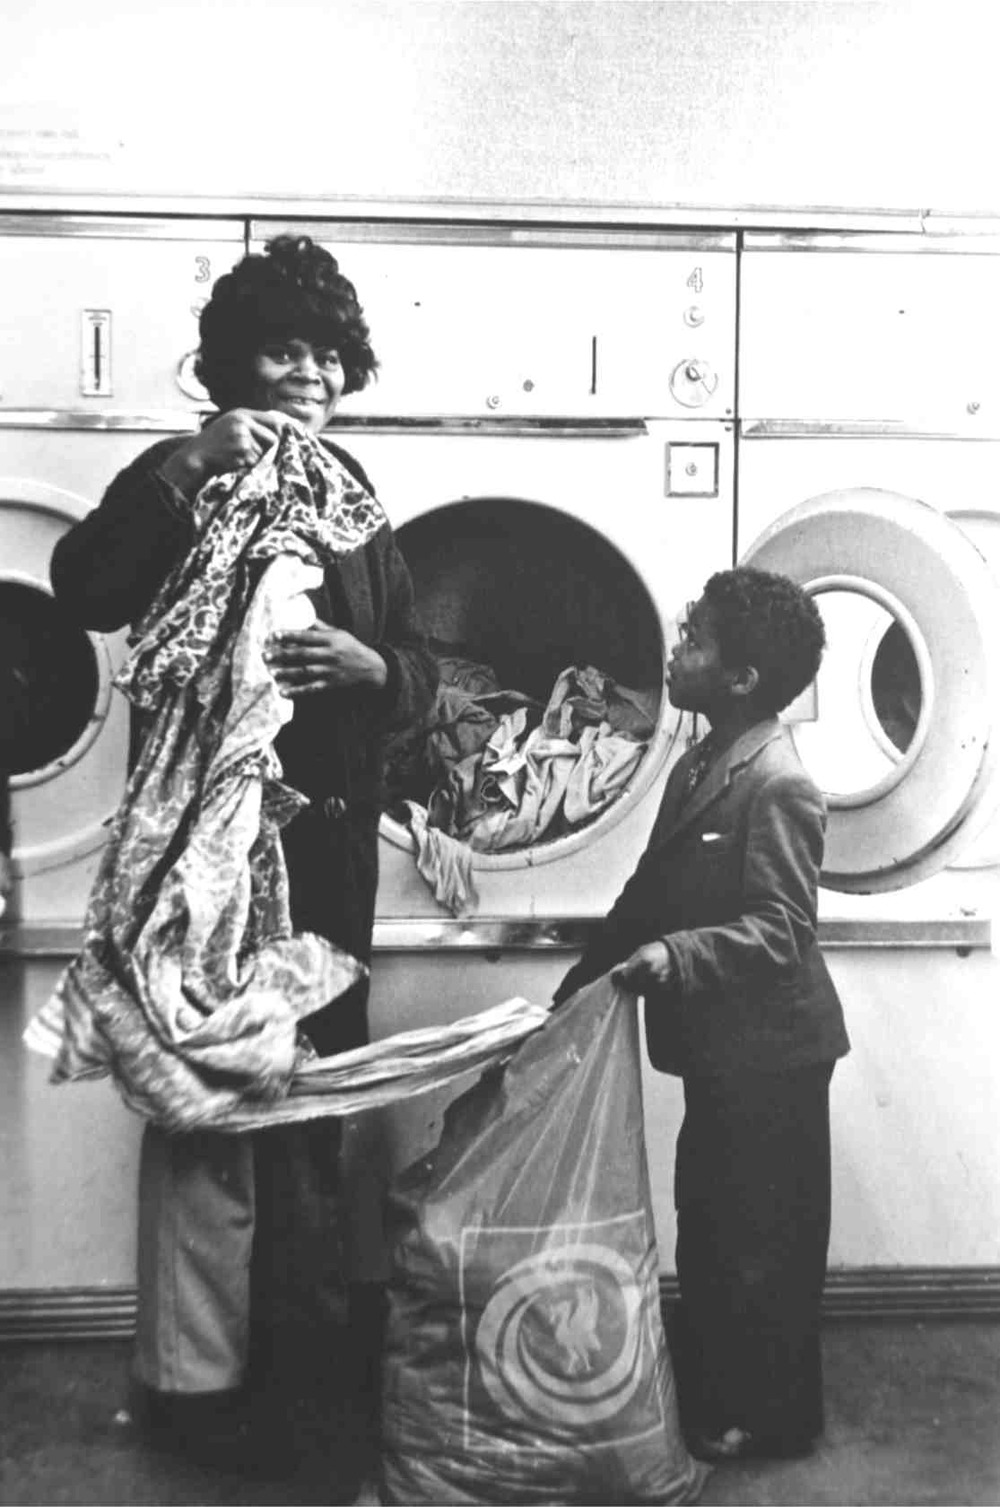 The launderette